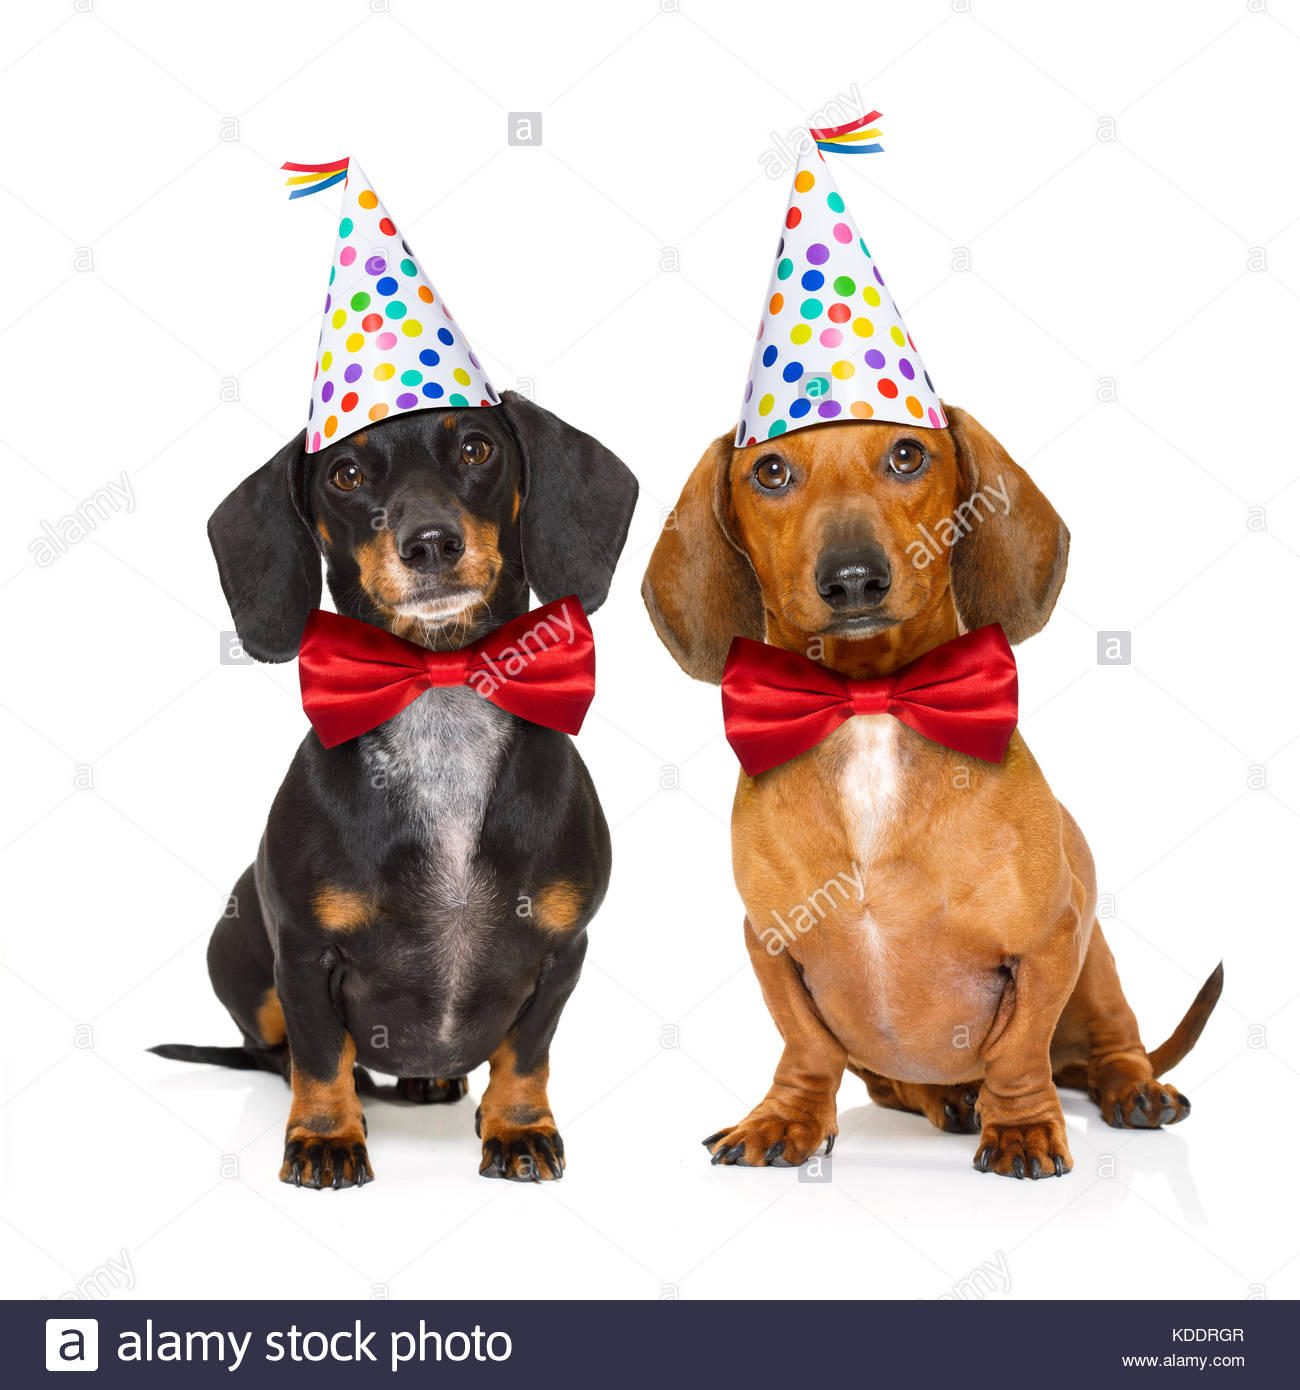 happy birthday dachshund ; couple-of-two-dachshund-or-sausage-dogs-hungry-for-a-happy-birthday-KDDRGR